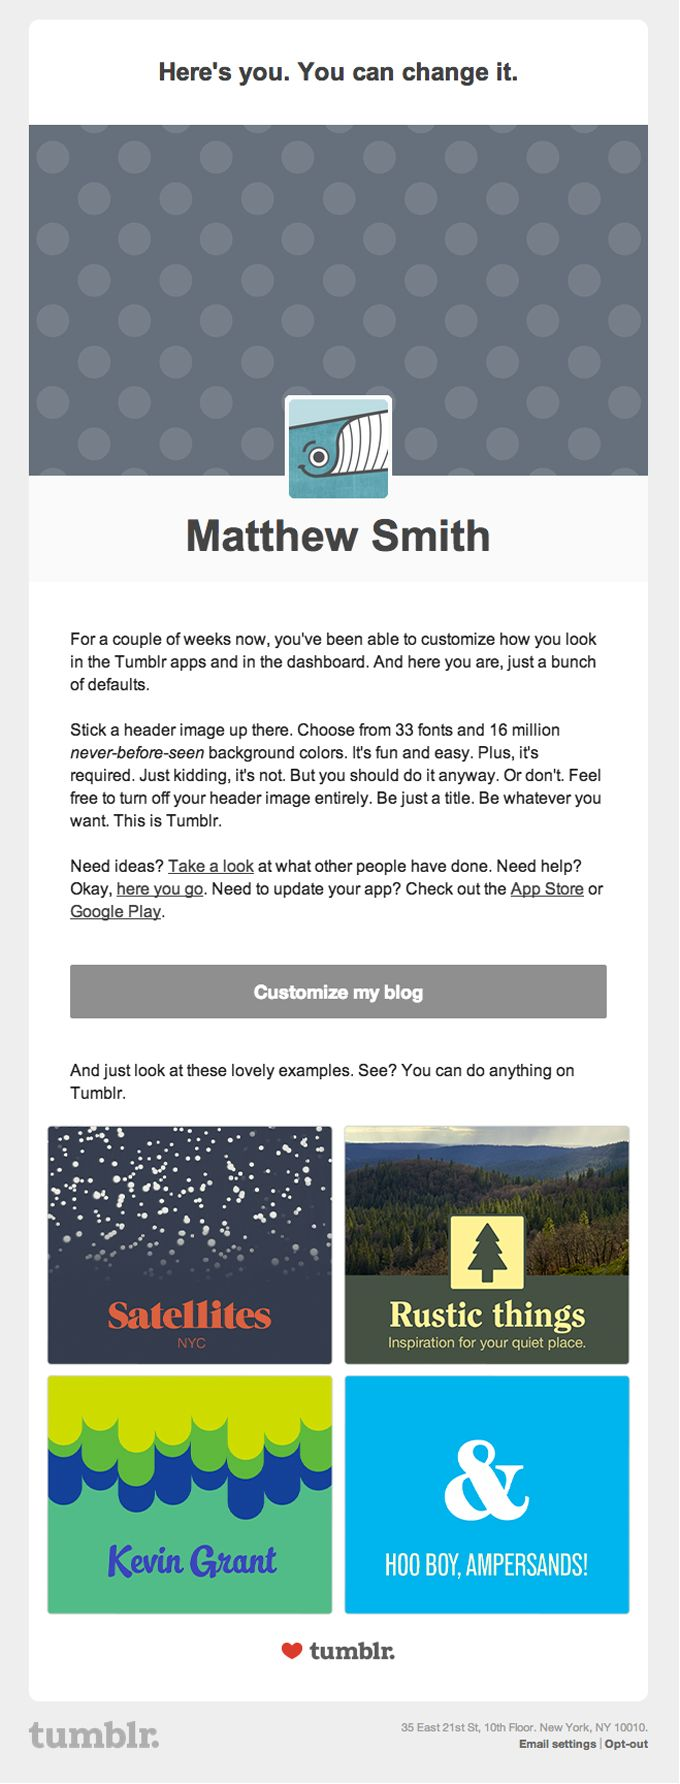 Product-Tour-Onboarding-Email-From-Tumblr